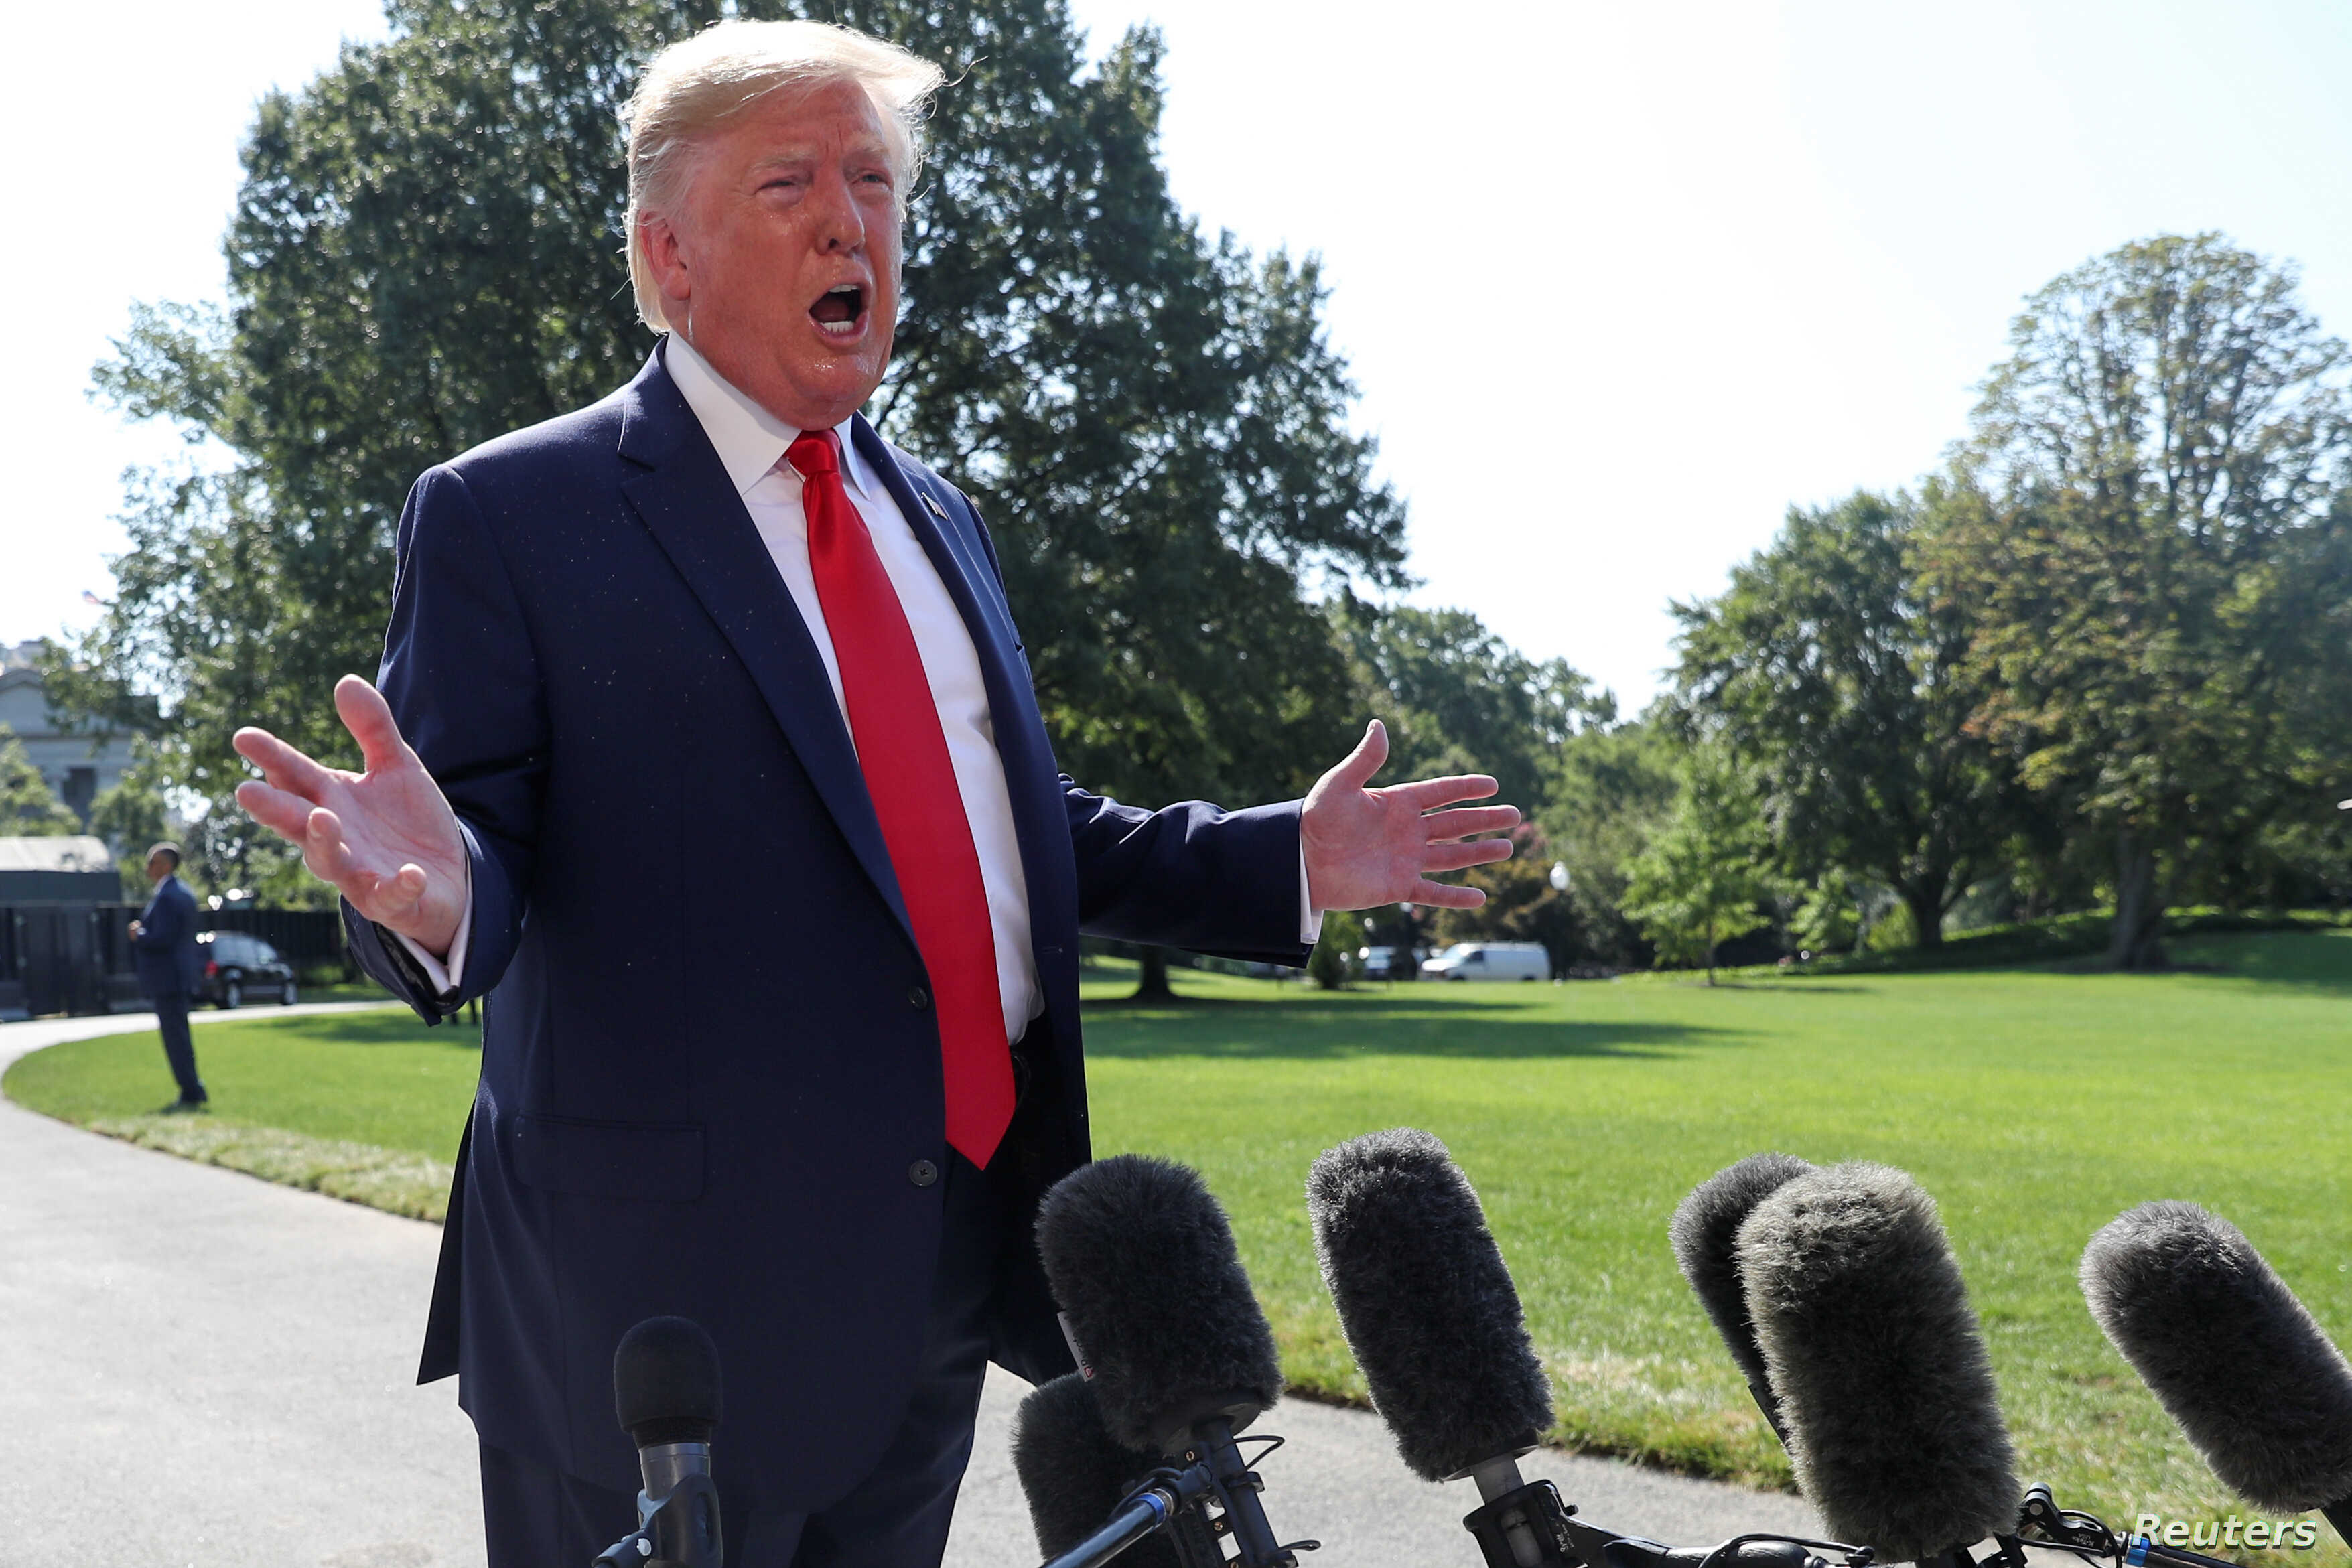 U.S. President Donald Trump talks to reporters as he departs for travel to New York and New Jersey from the South Lawn of the White House in Washington, Aug. 9, 2019.